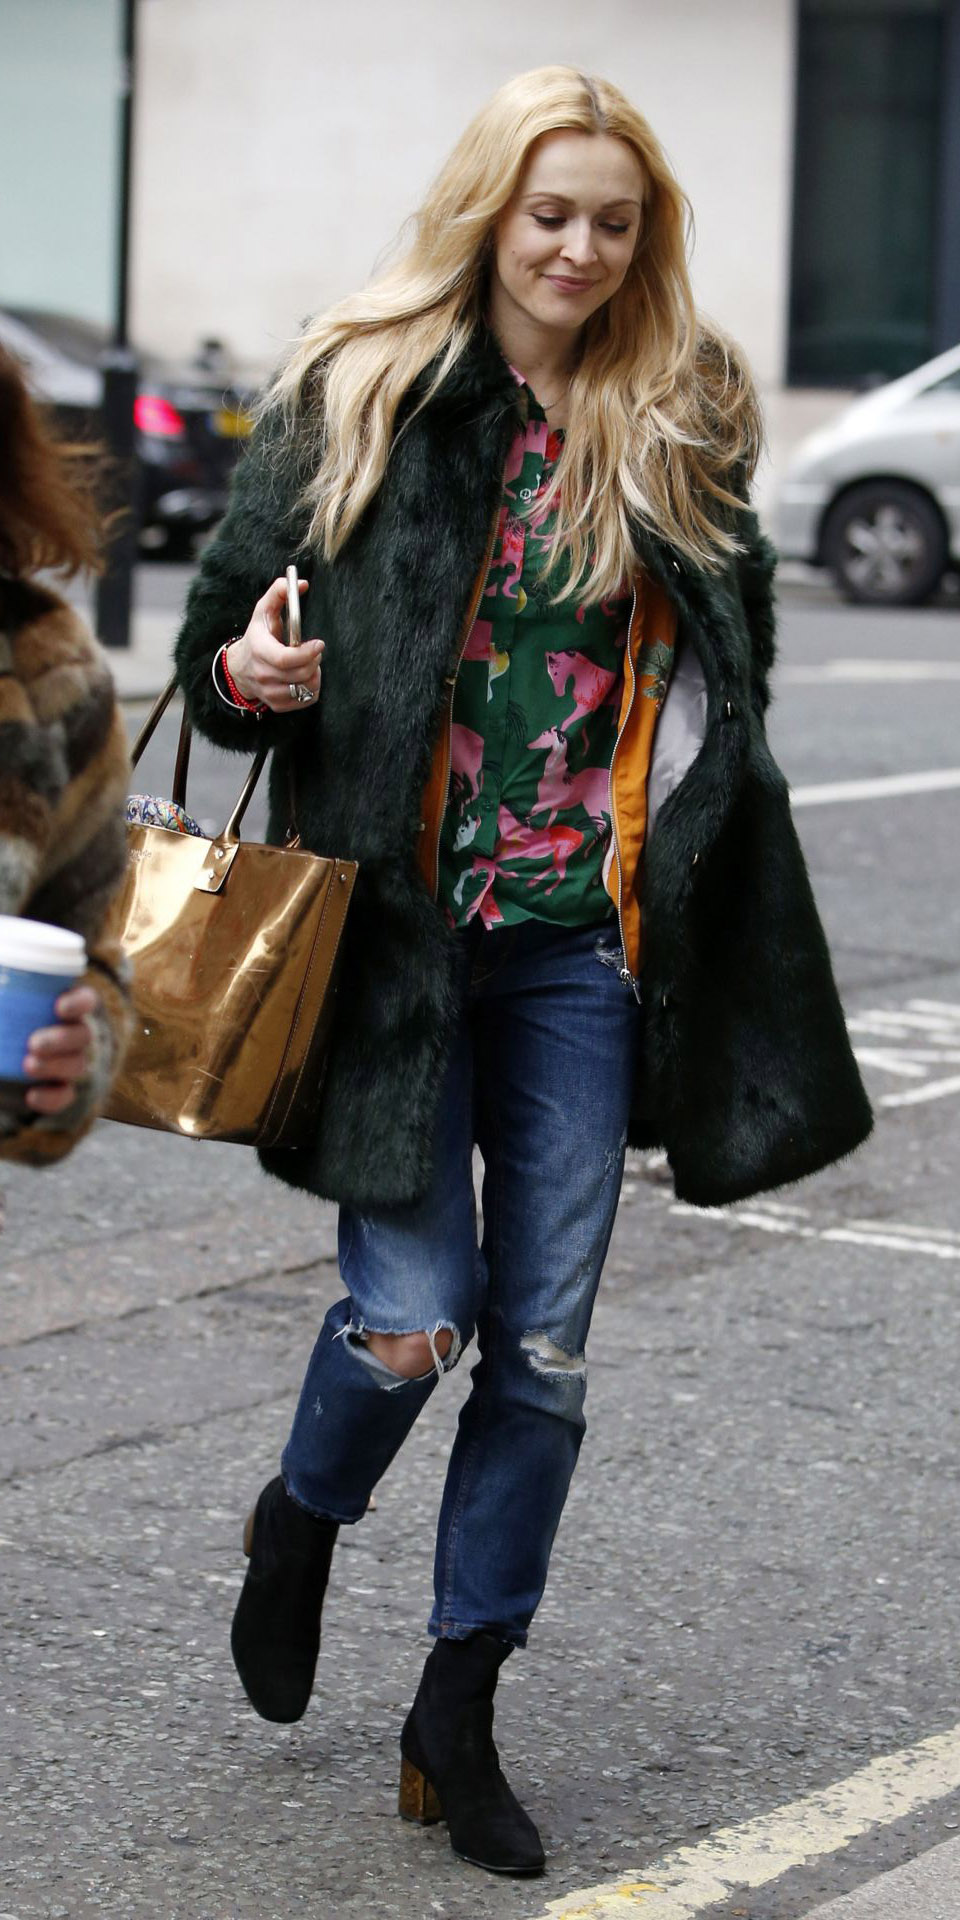 blue-med-boyfriend-jeans-green-emerald-top-blouse-print-layer-green-dark-jacket-coat-fur-fuzz-tan-bag-gold-fearnecotton-blonde-fall-winter-lunch.jpg